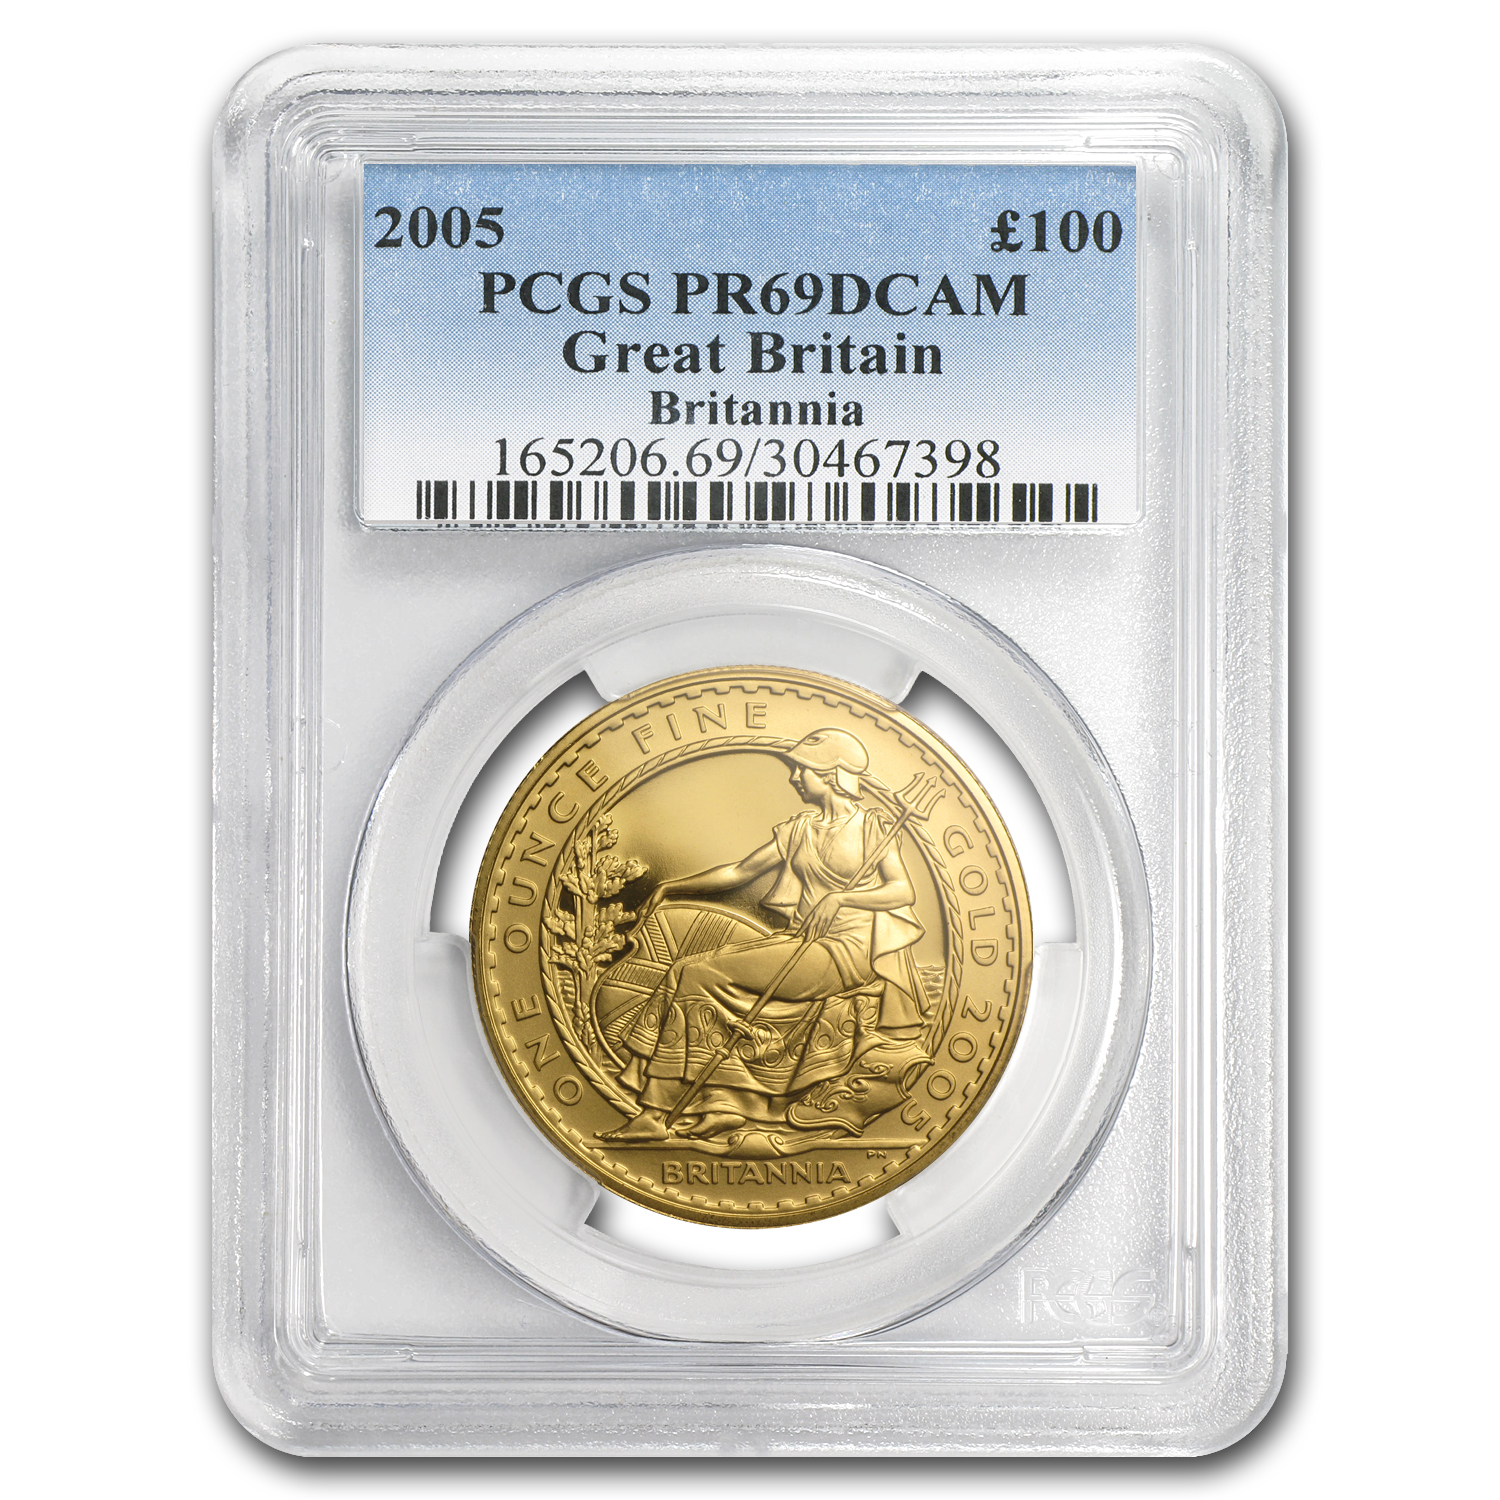 2005 1 oz Proof Gold Britannia PR-69 DCAM PCGS